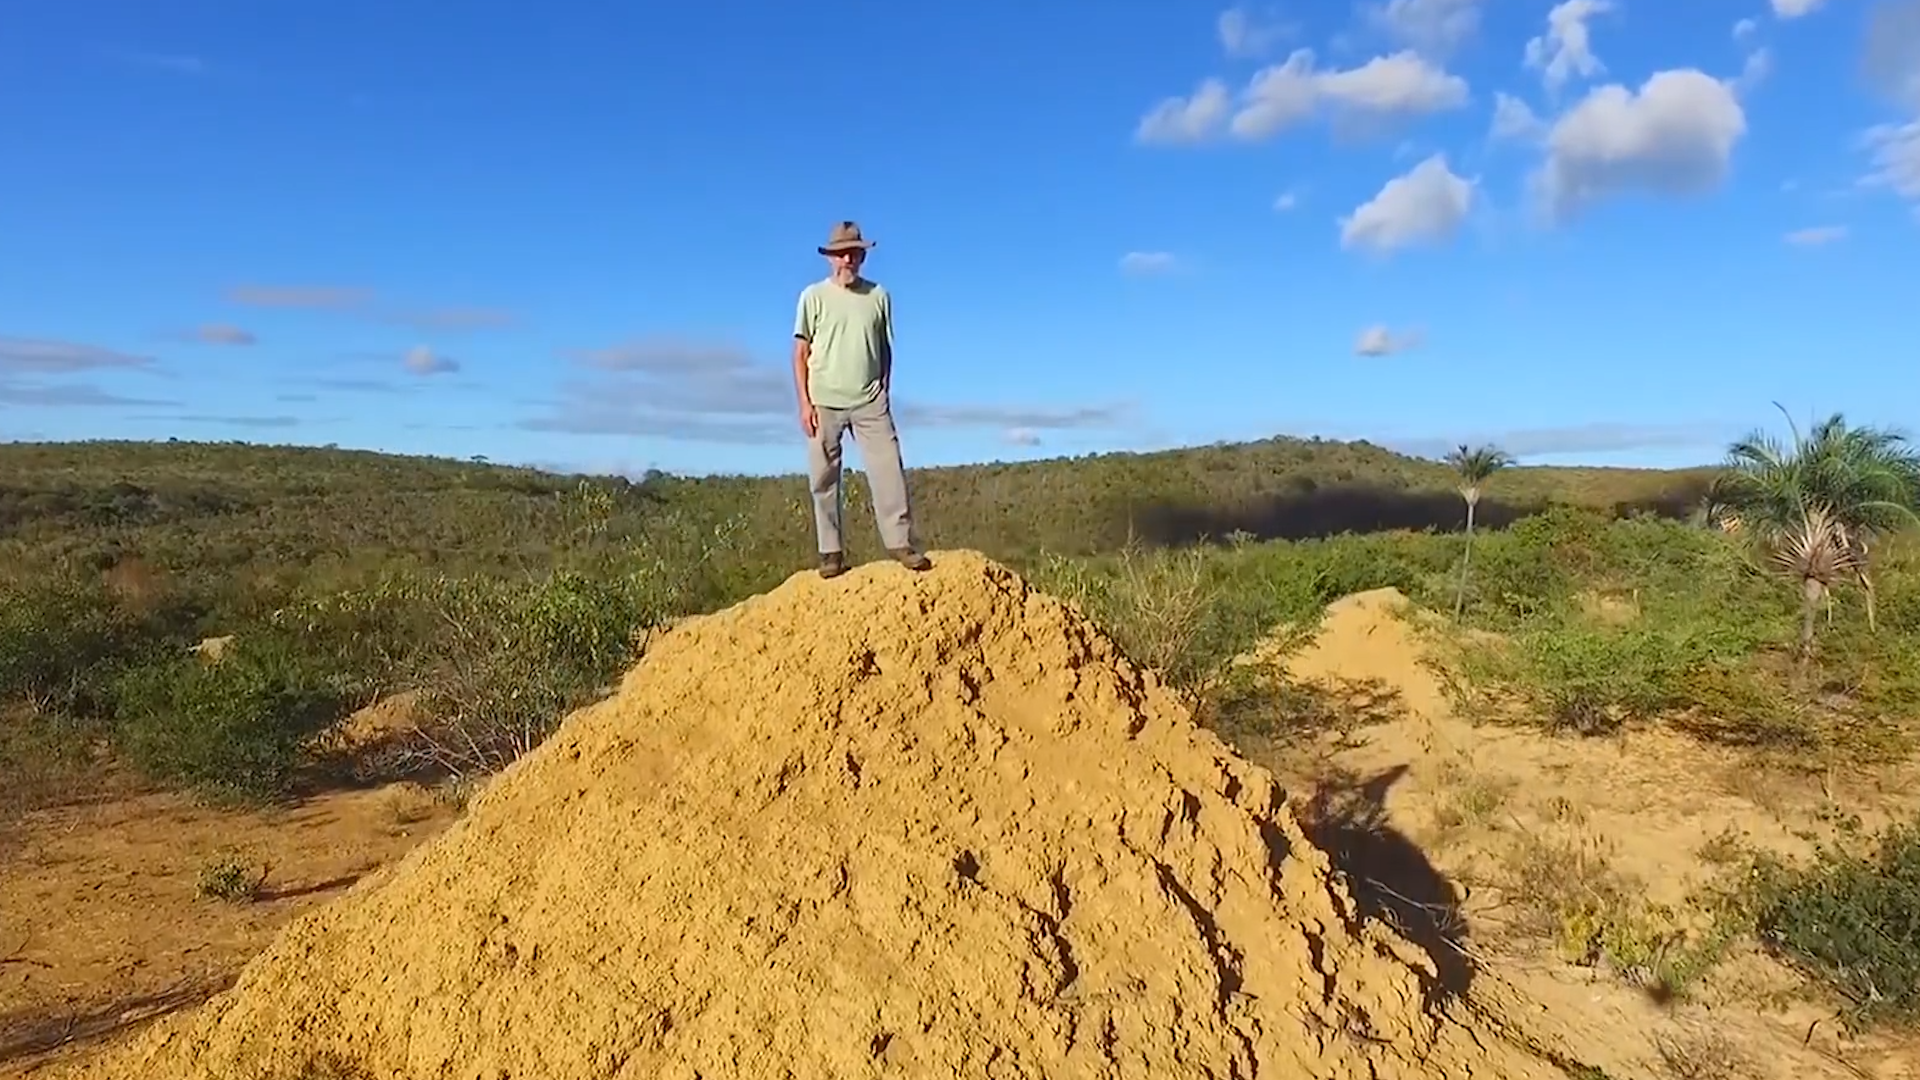 Termite mound the size of Britain found